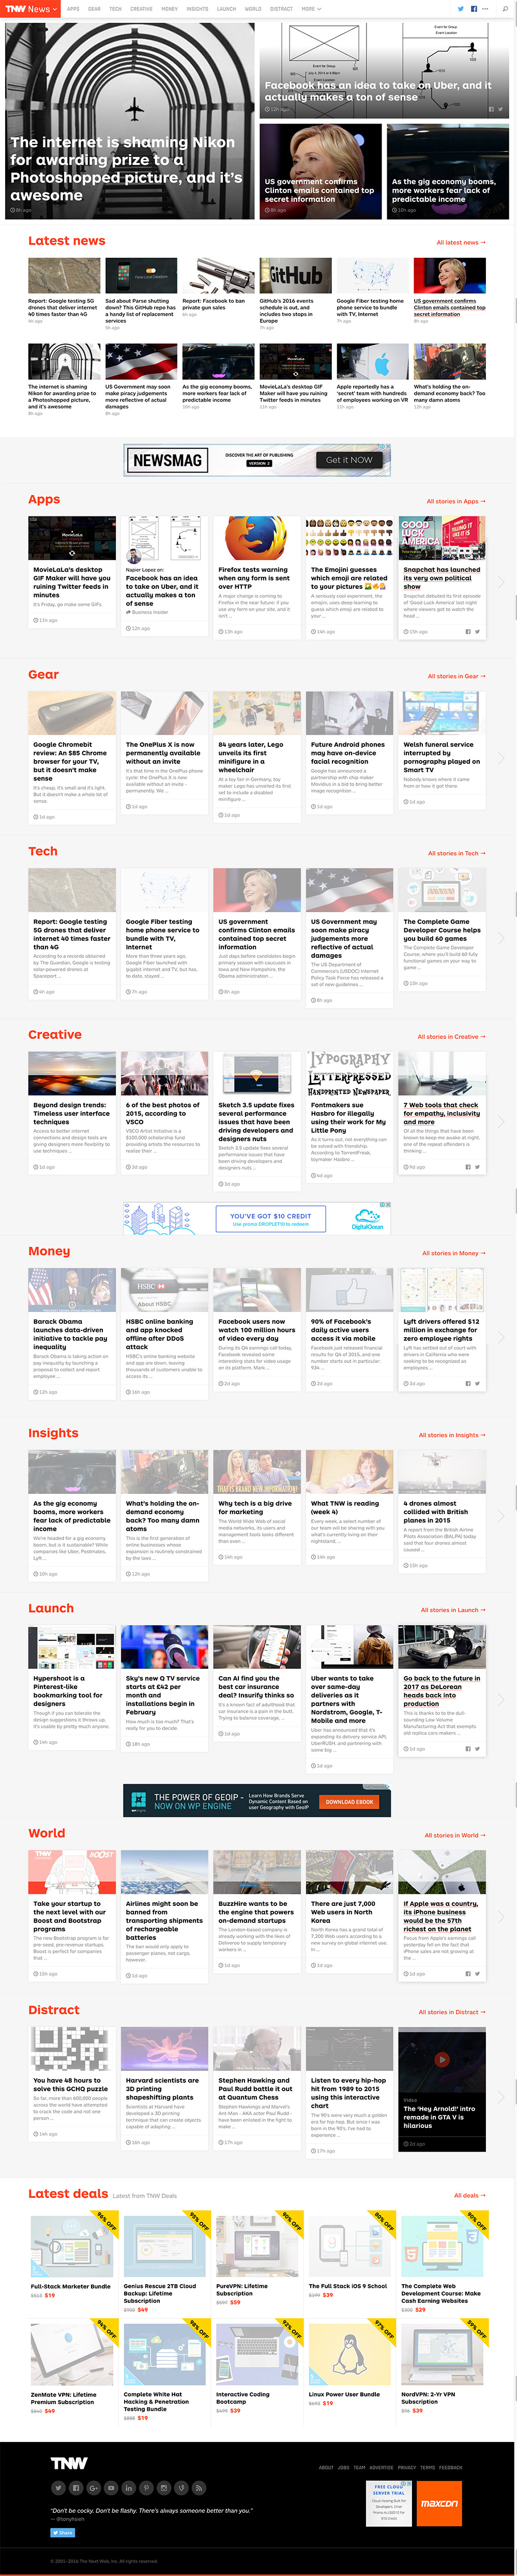 Tnw- The Next Web Front Page